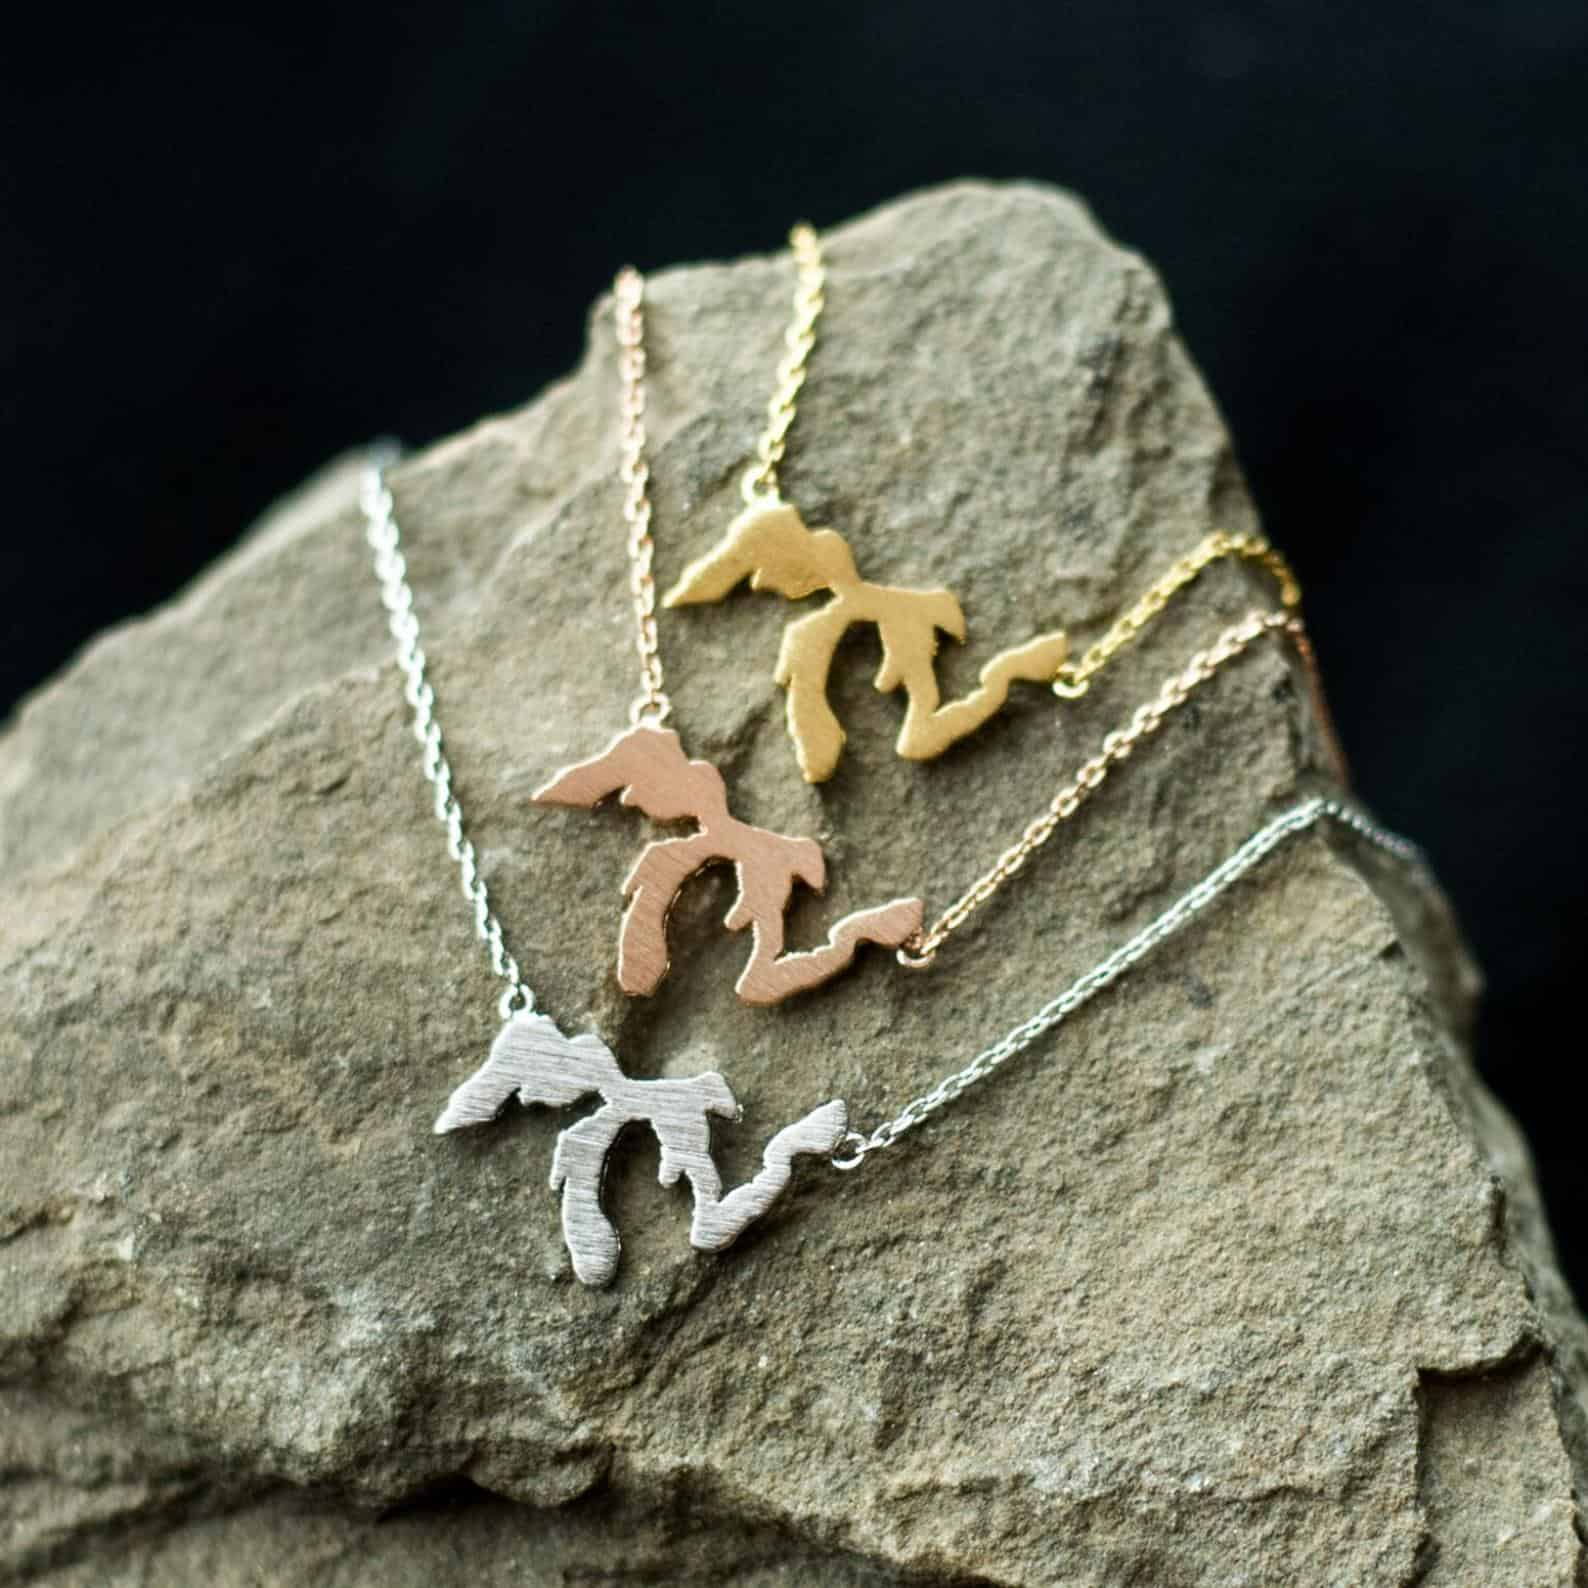 Great Lakes Necklace - an ultimate michigan gift idea